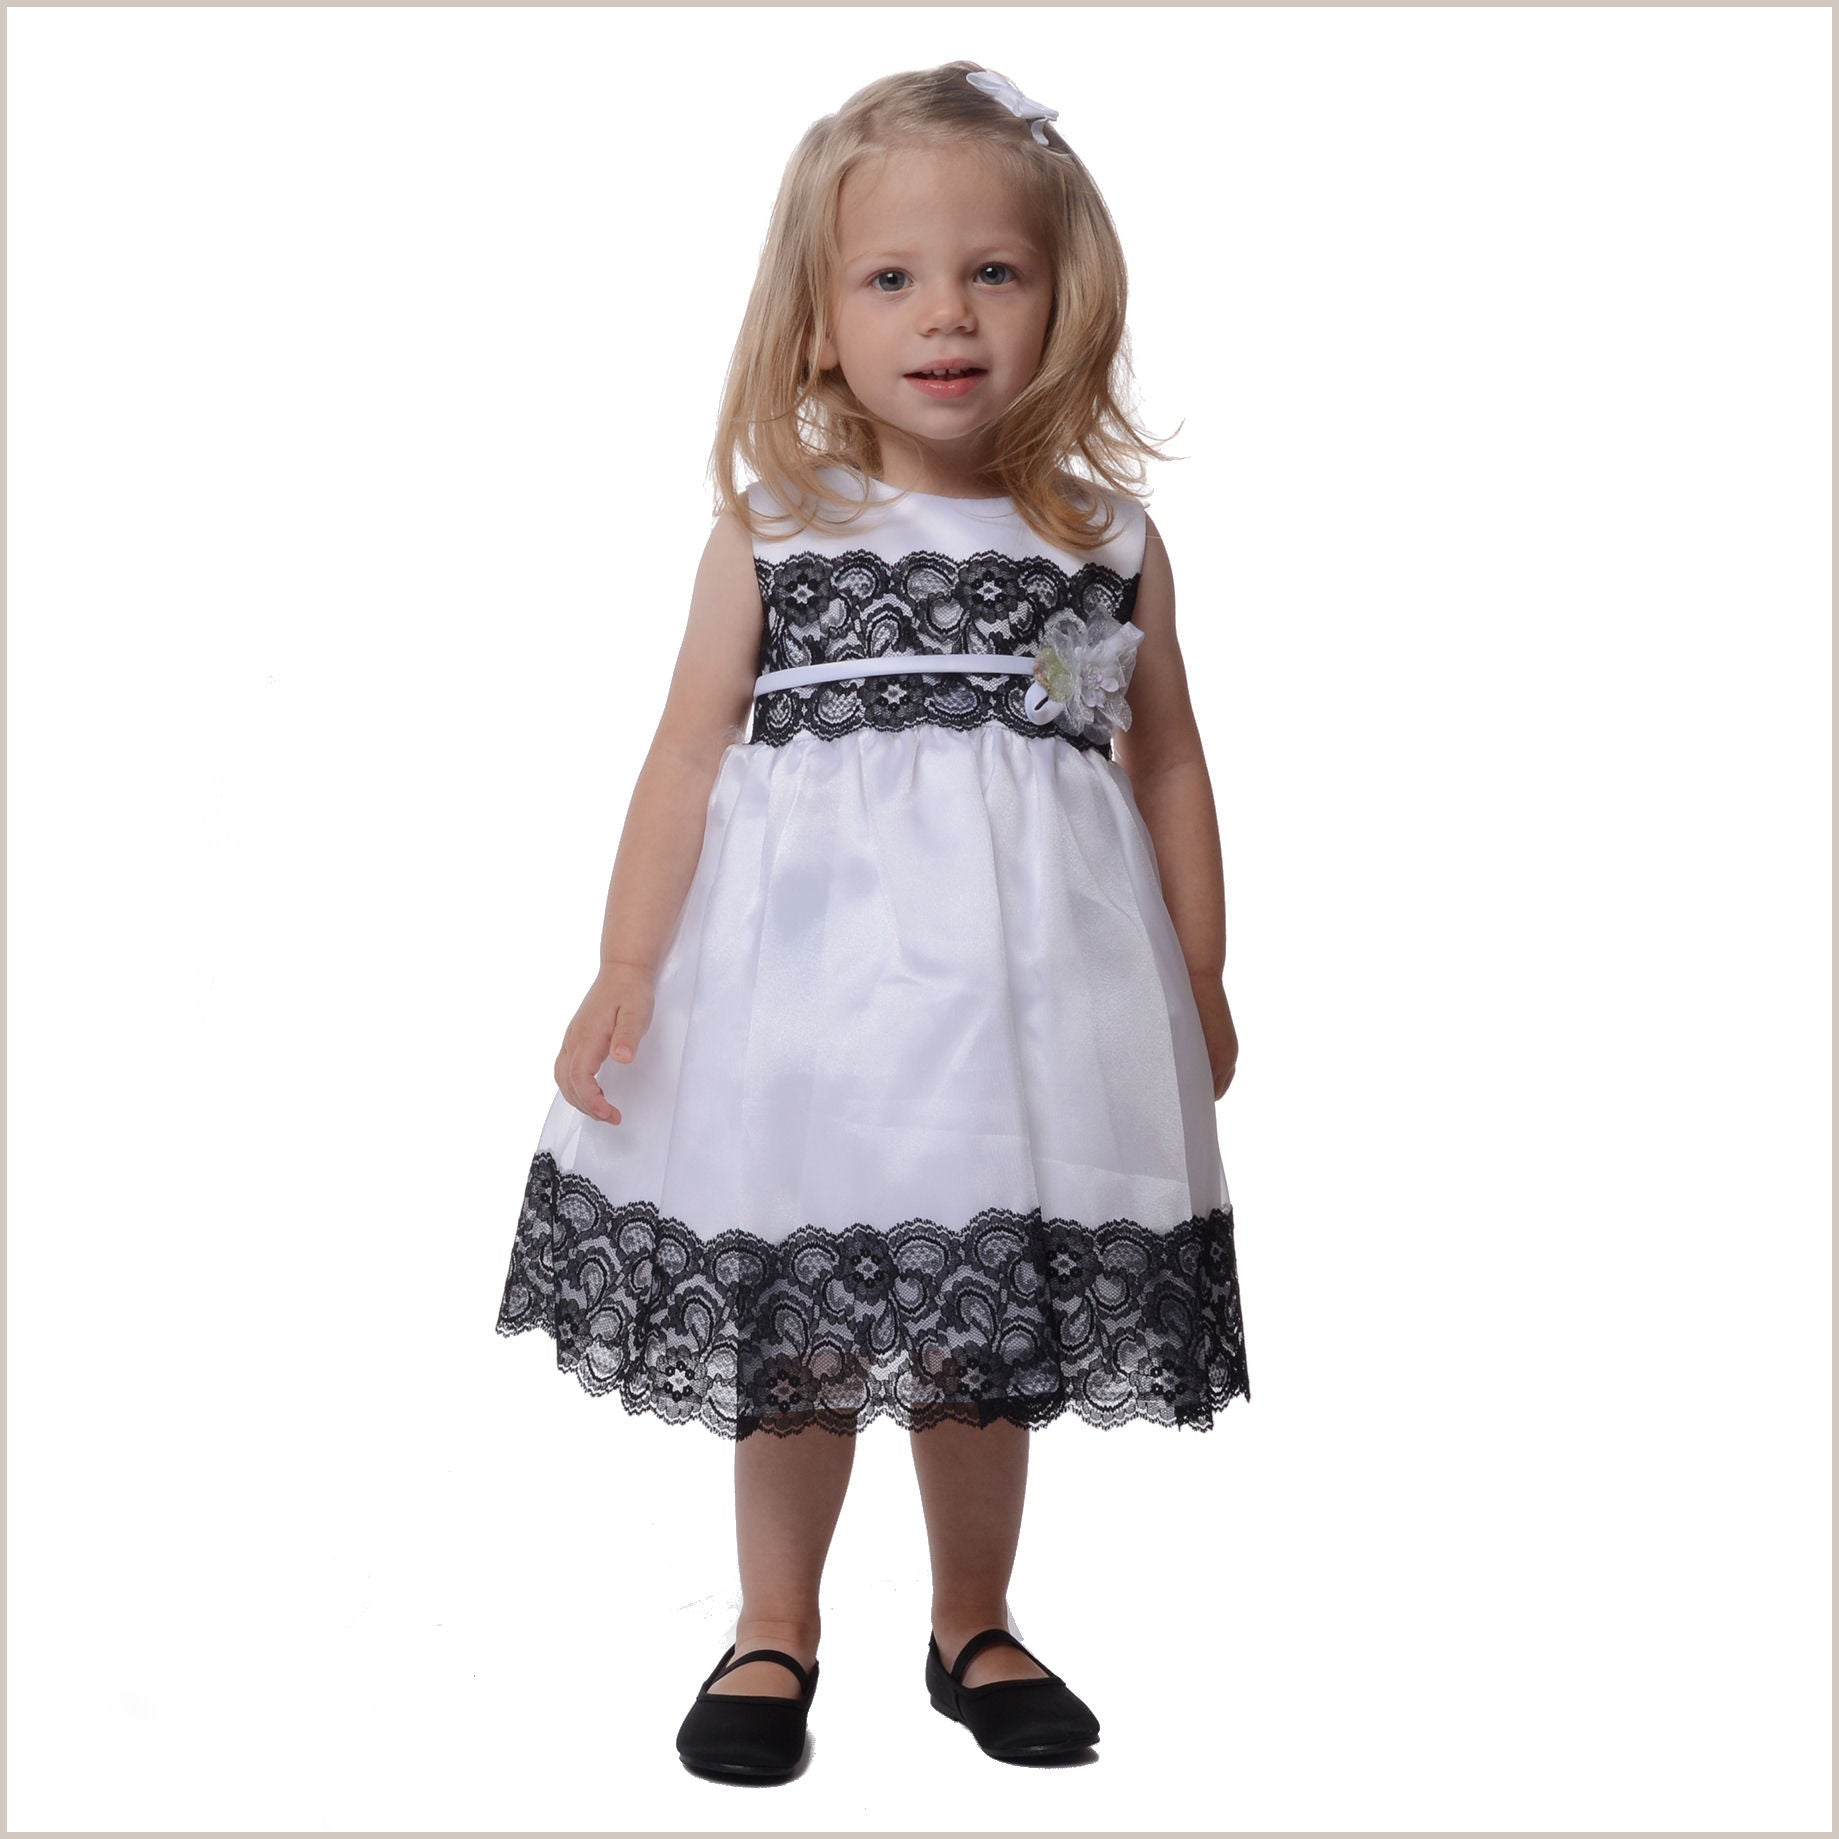 Anouk White Flower Girl Dress With Black Lace Trim